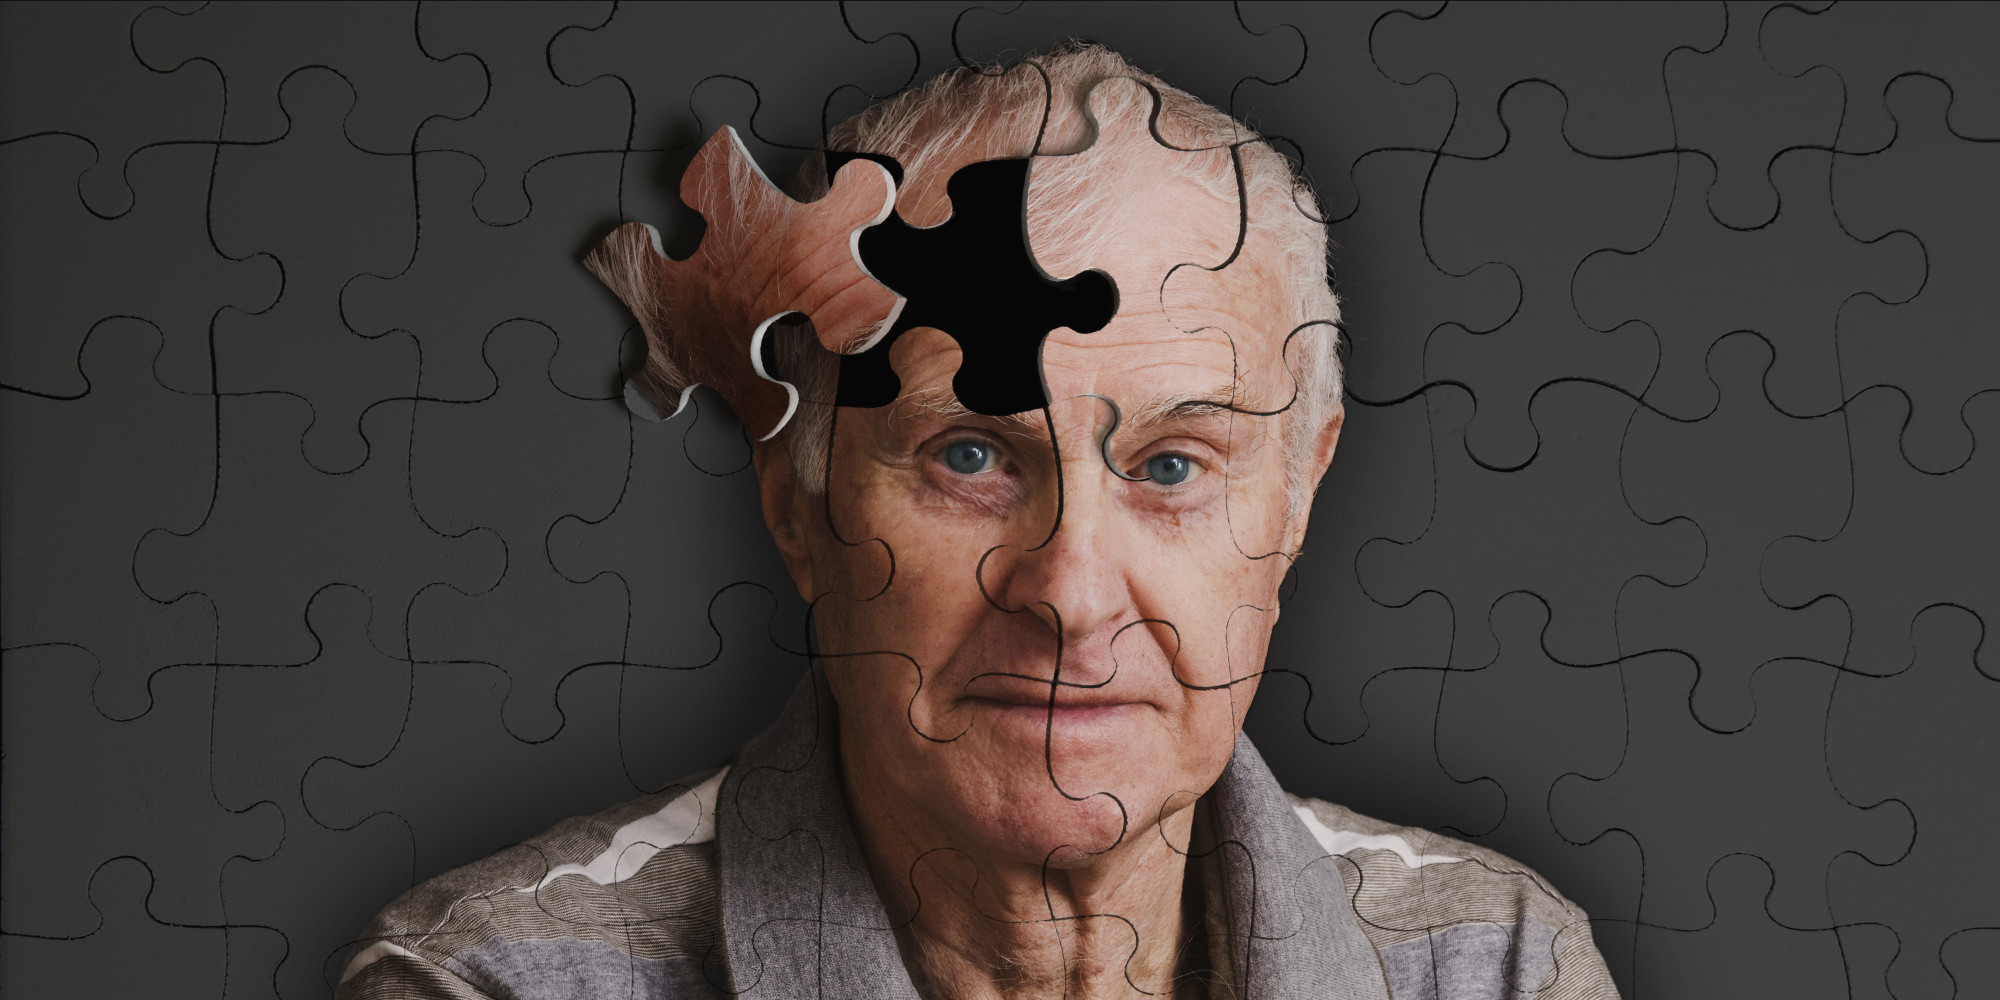 Alzheimer's And Other Neurodegenerative Disorders Seek Attention, Awareness And Cure.